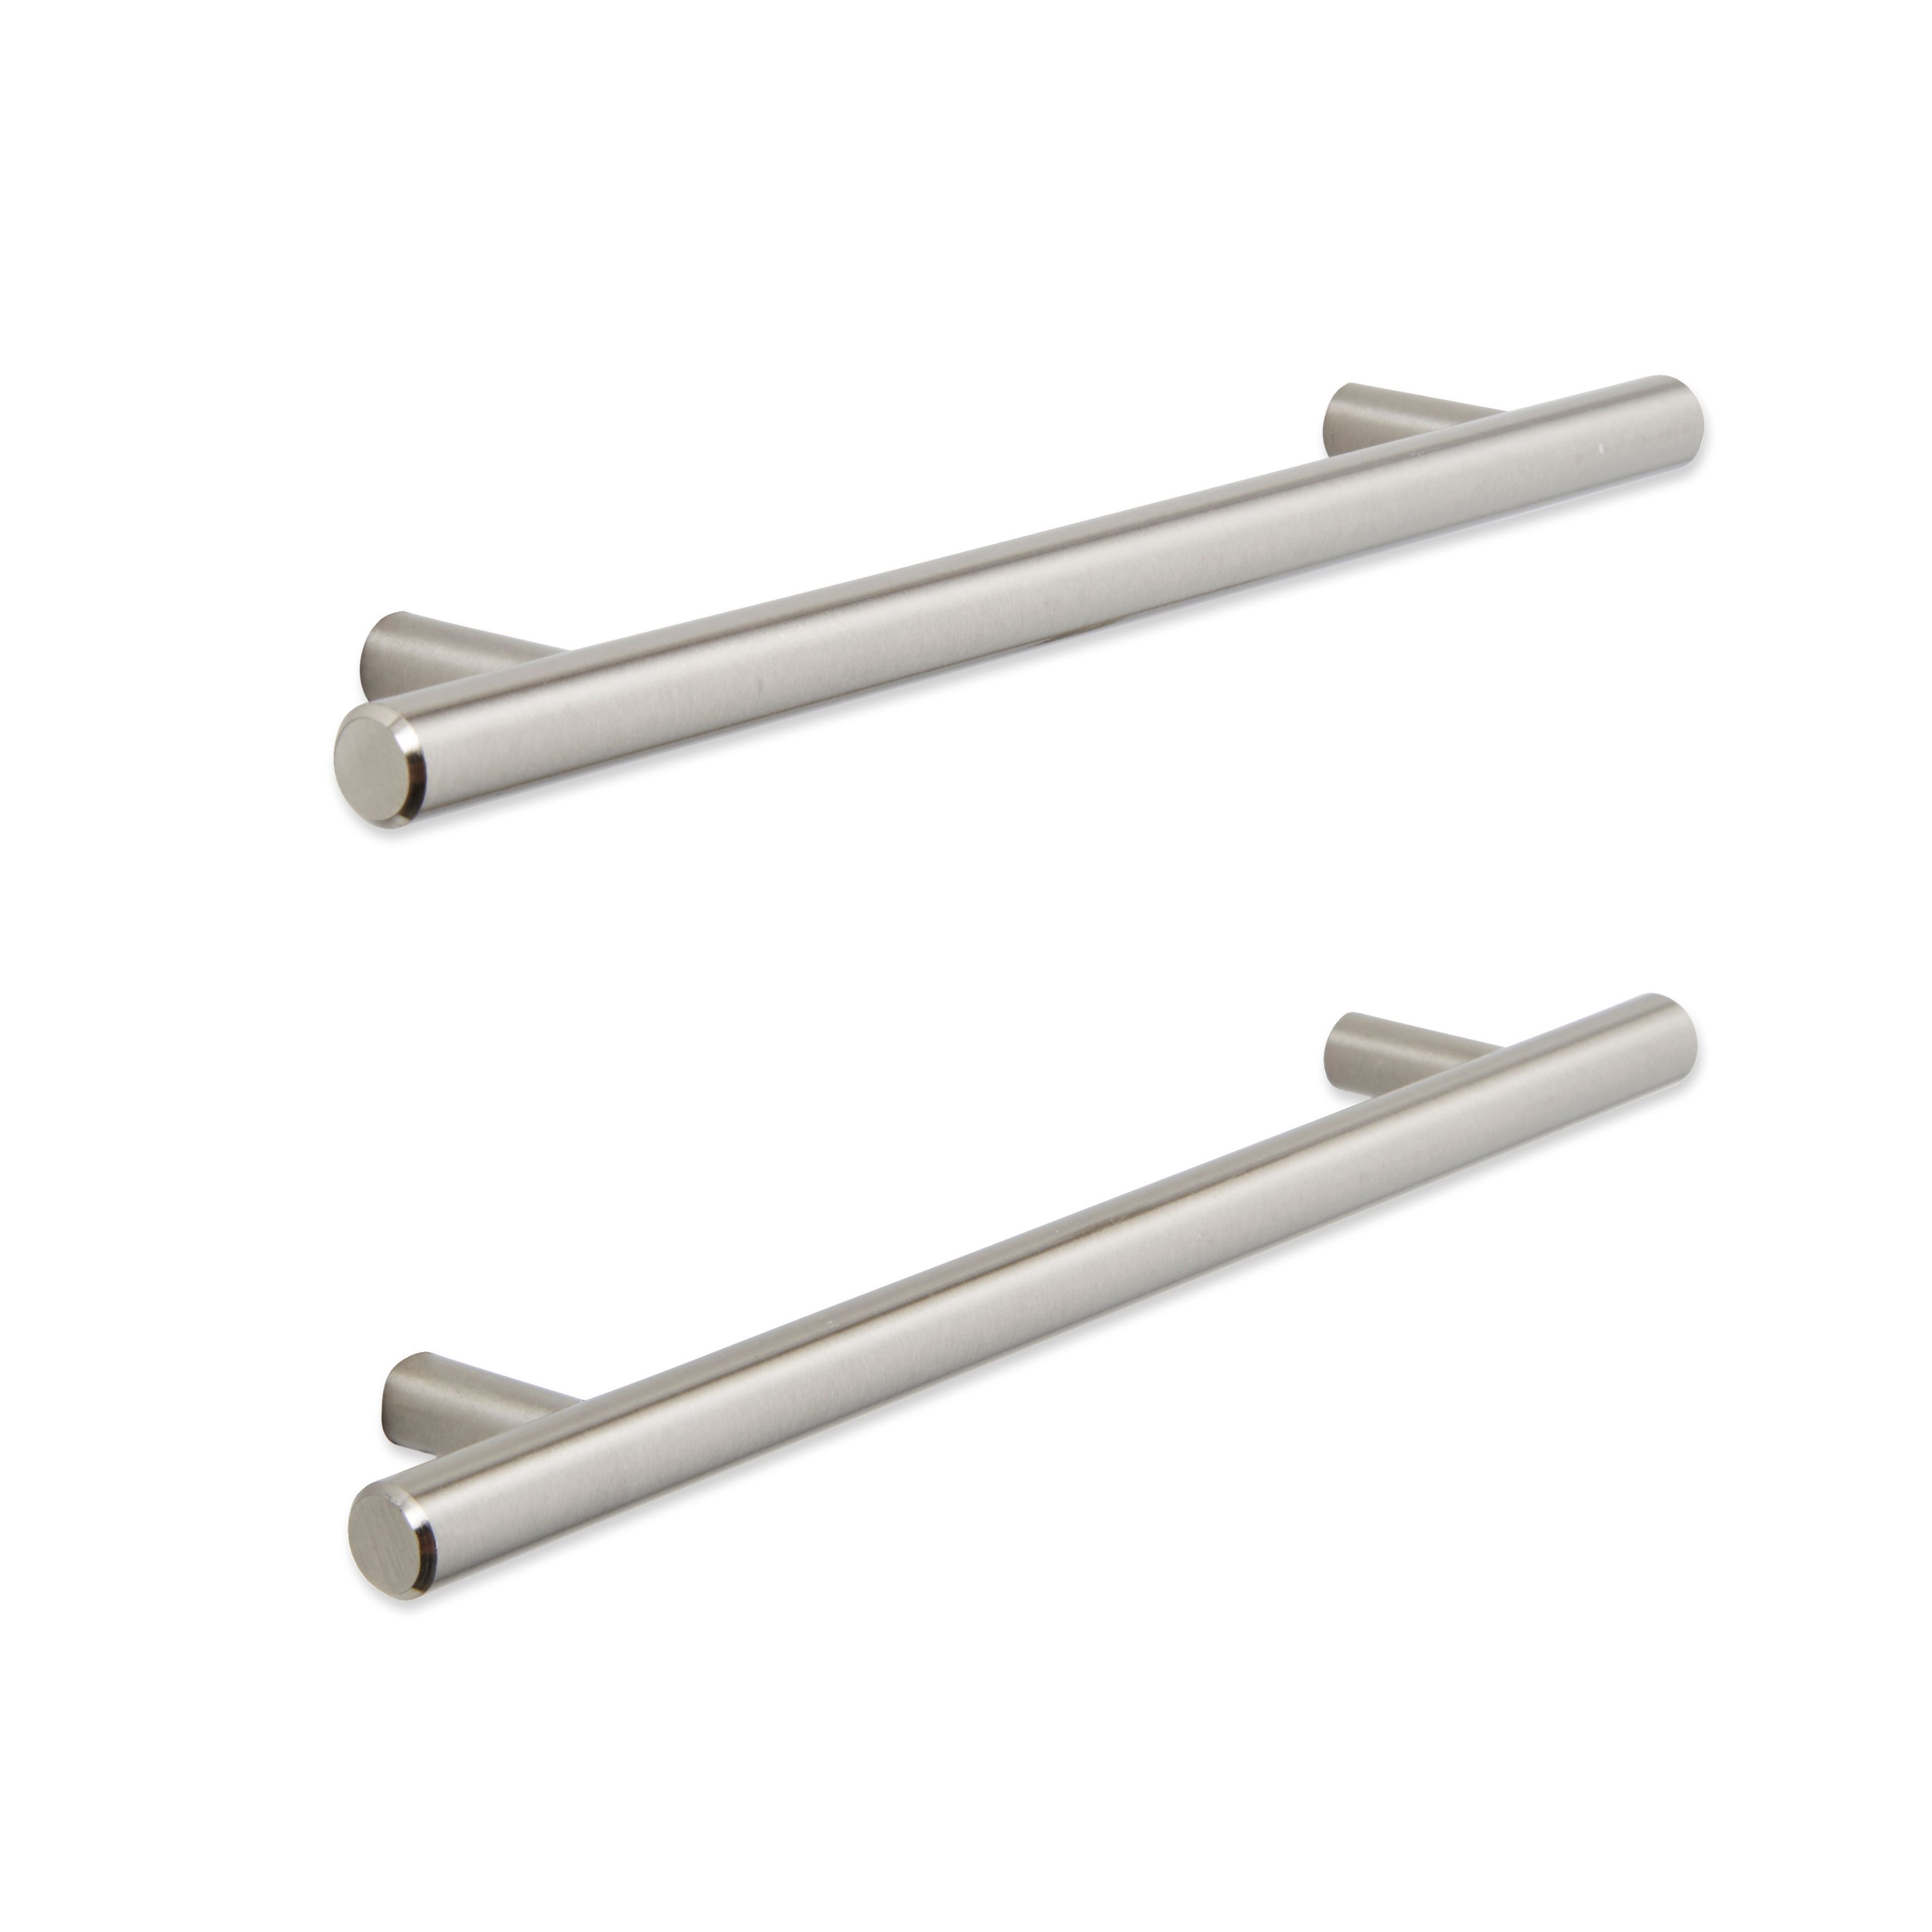 In the kitchen antique wrenches are used as cabinet door handles and - B Q Brushed Nickel Effect Straight Furniture Handle Pack Of 2 Departments Diy At B Q